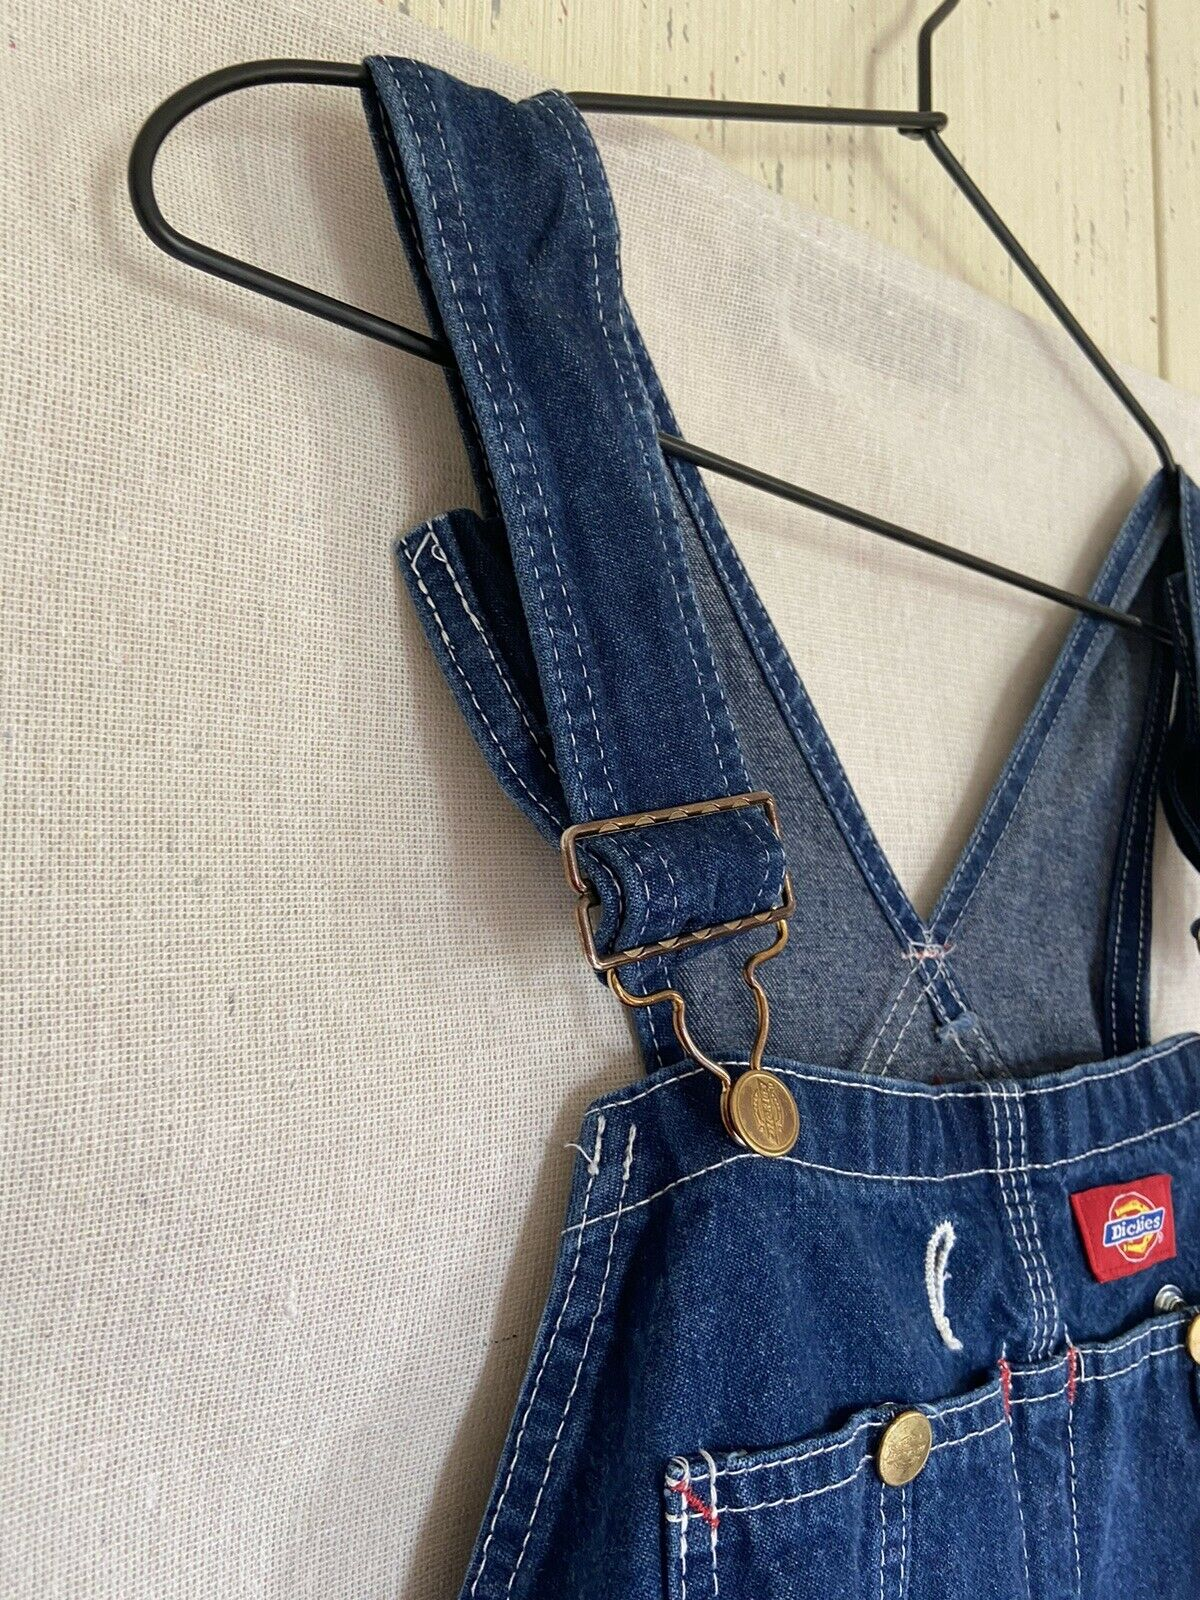 Dickies Denim Overalls Size 38x30 Fit 36x29 - image 3